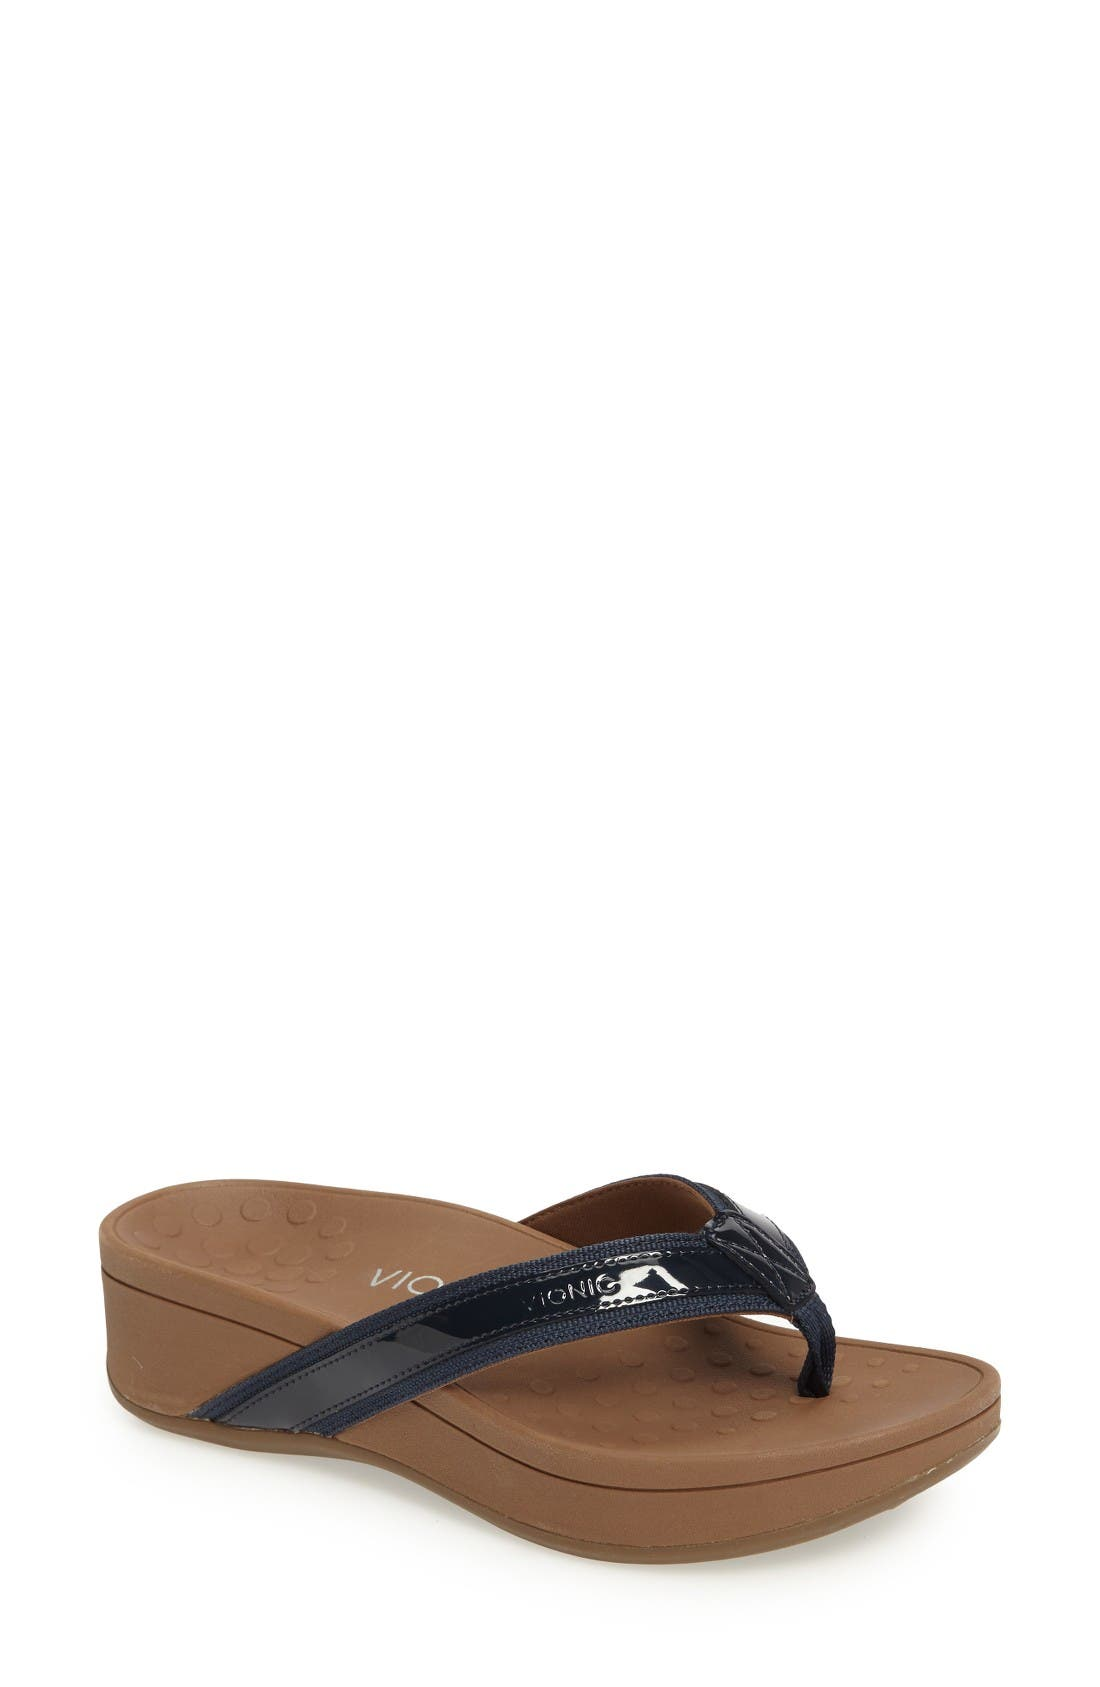 High Tide Wedge Flip Flop,                             Main thumbnail 1, color,                             Navy Leather